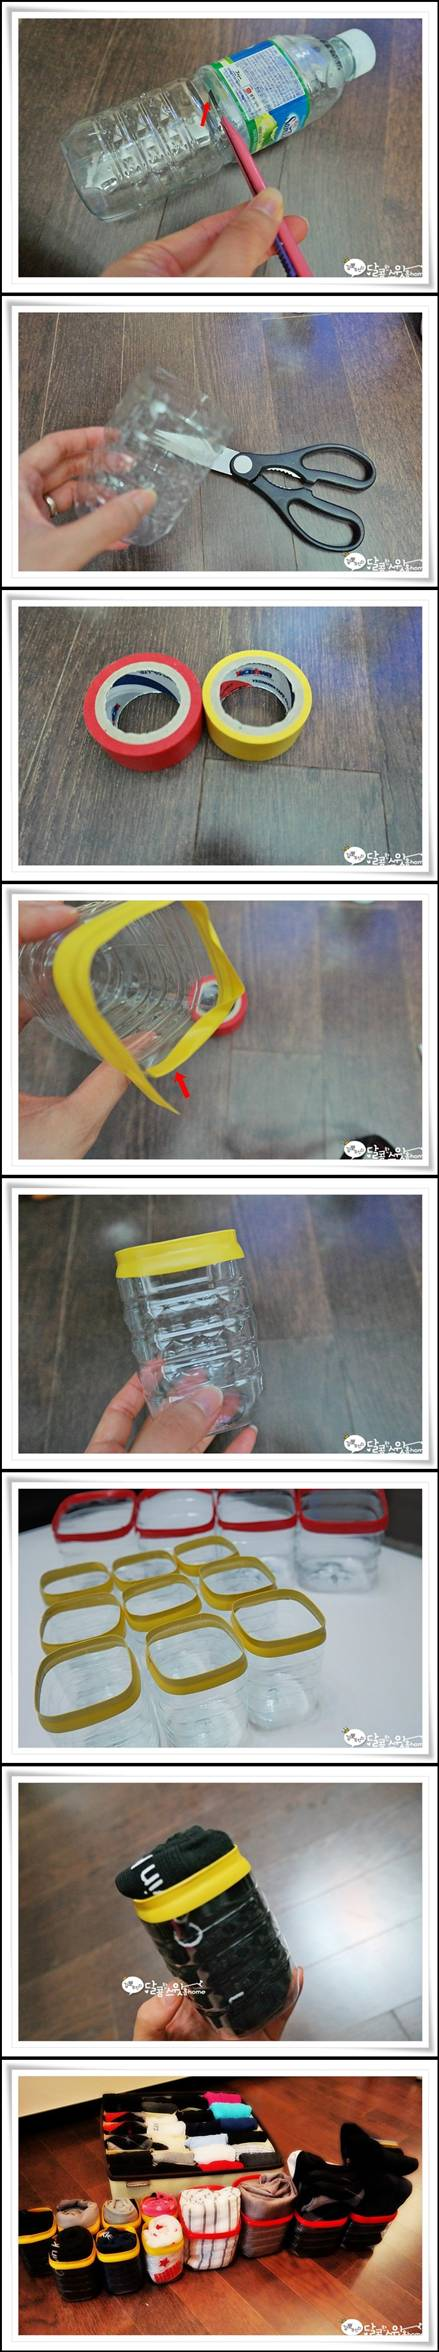 How to make Plastic Water Bottle Underwear Storage Units step by step DIY tutorial instructions